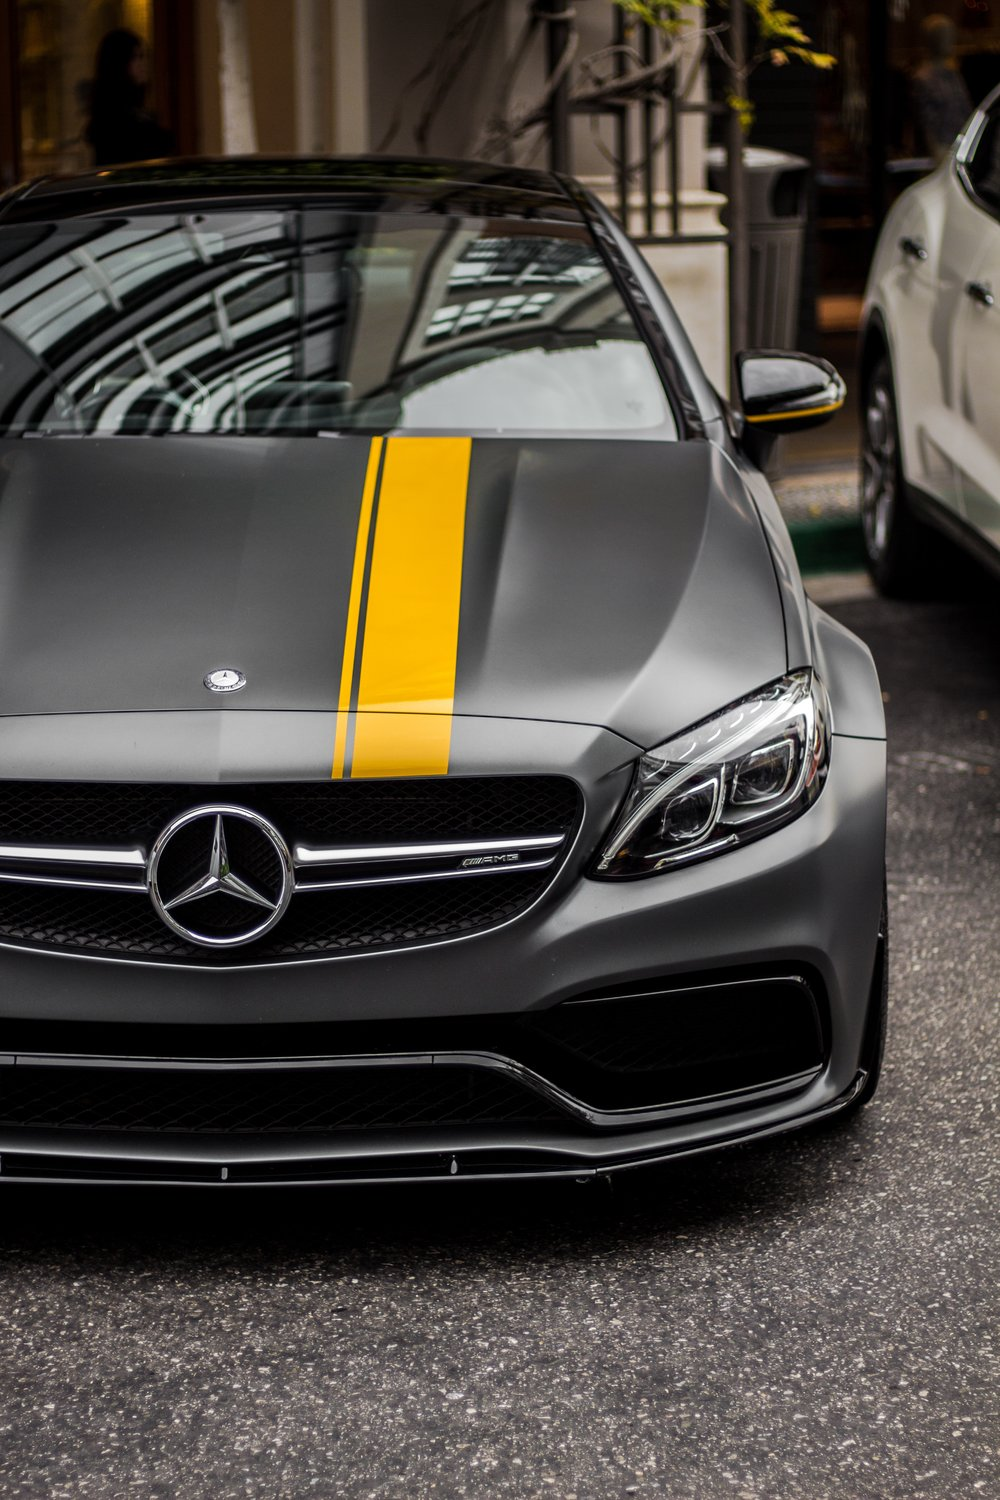 racing-stripes-mercedes.jpg